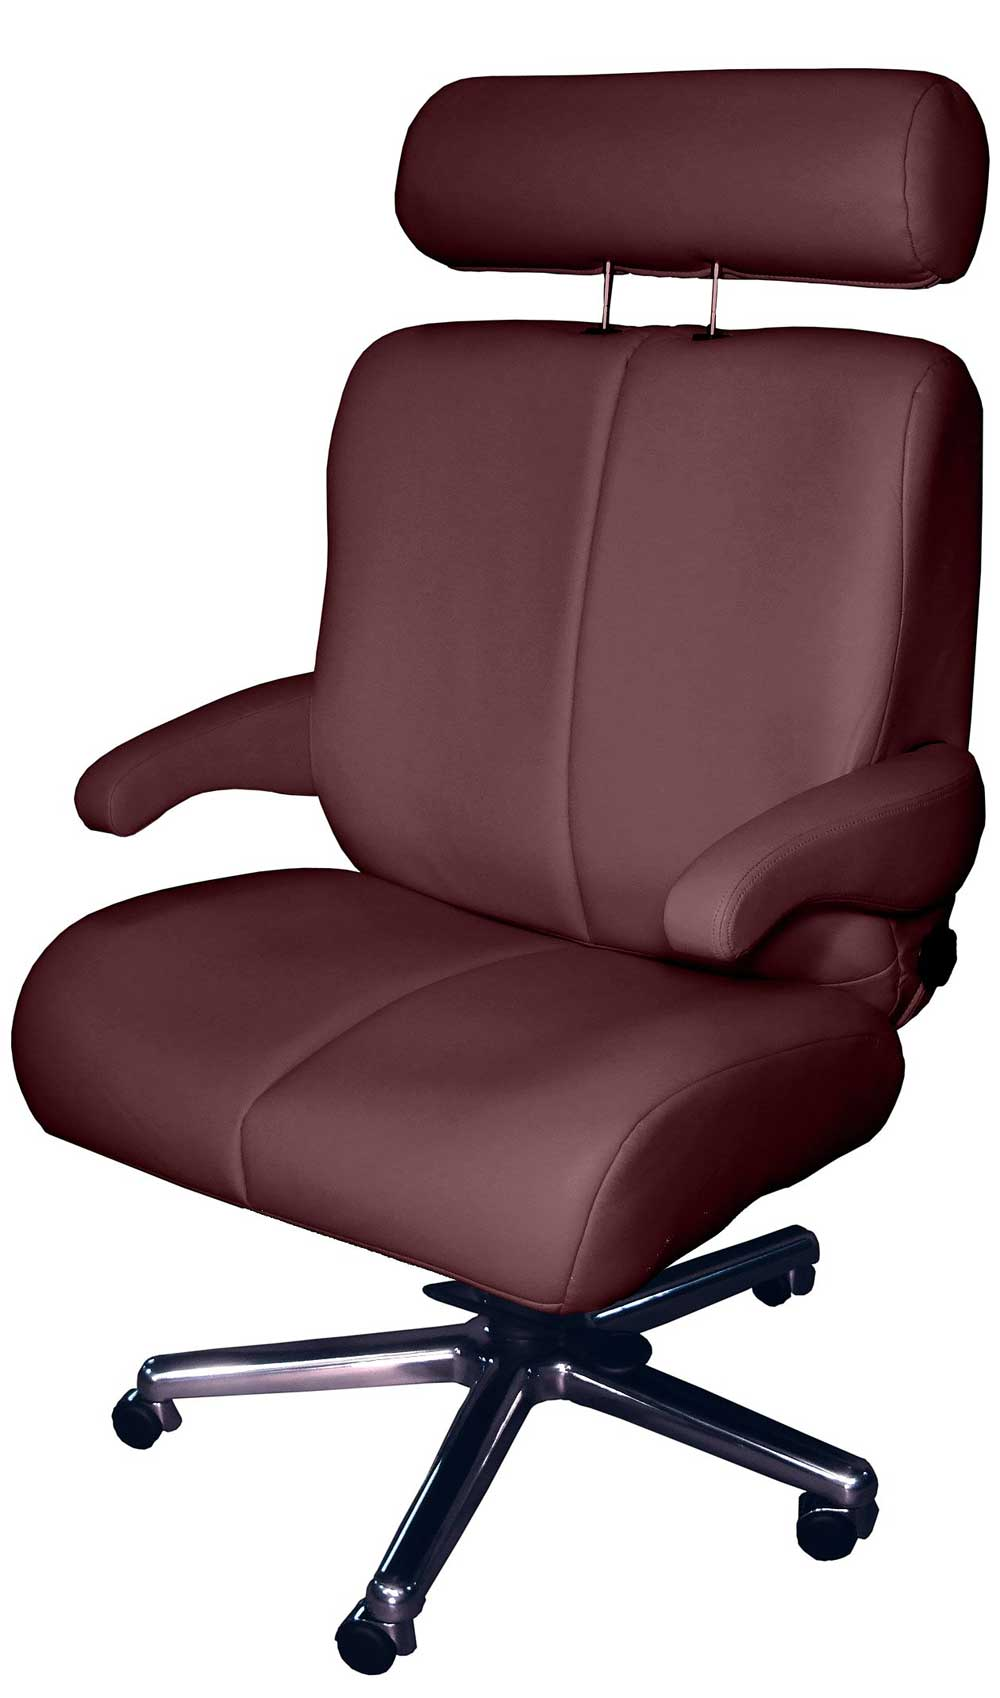 chairs for heavy guys adult rocking chair big and tall office furniture